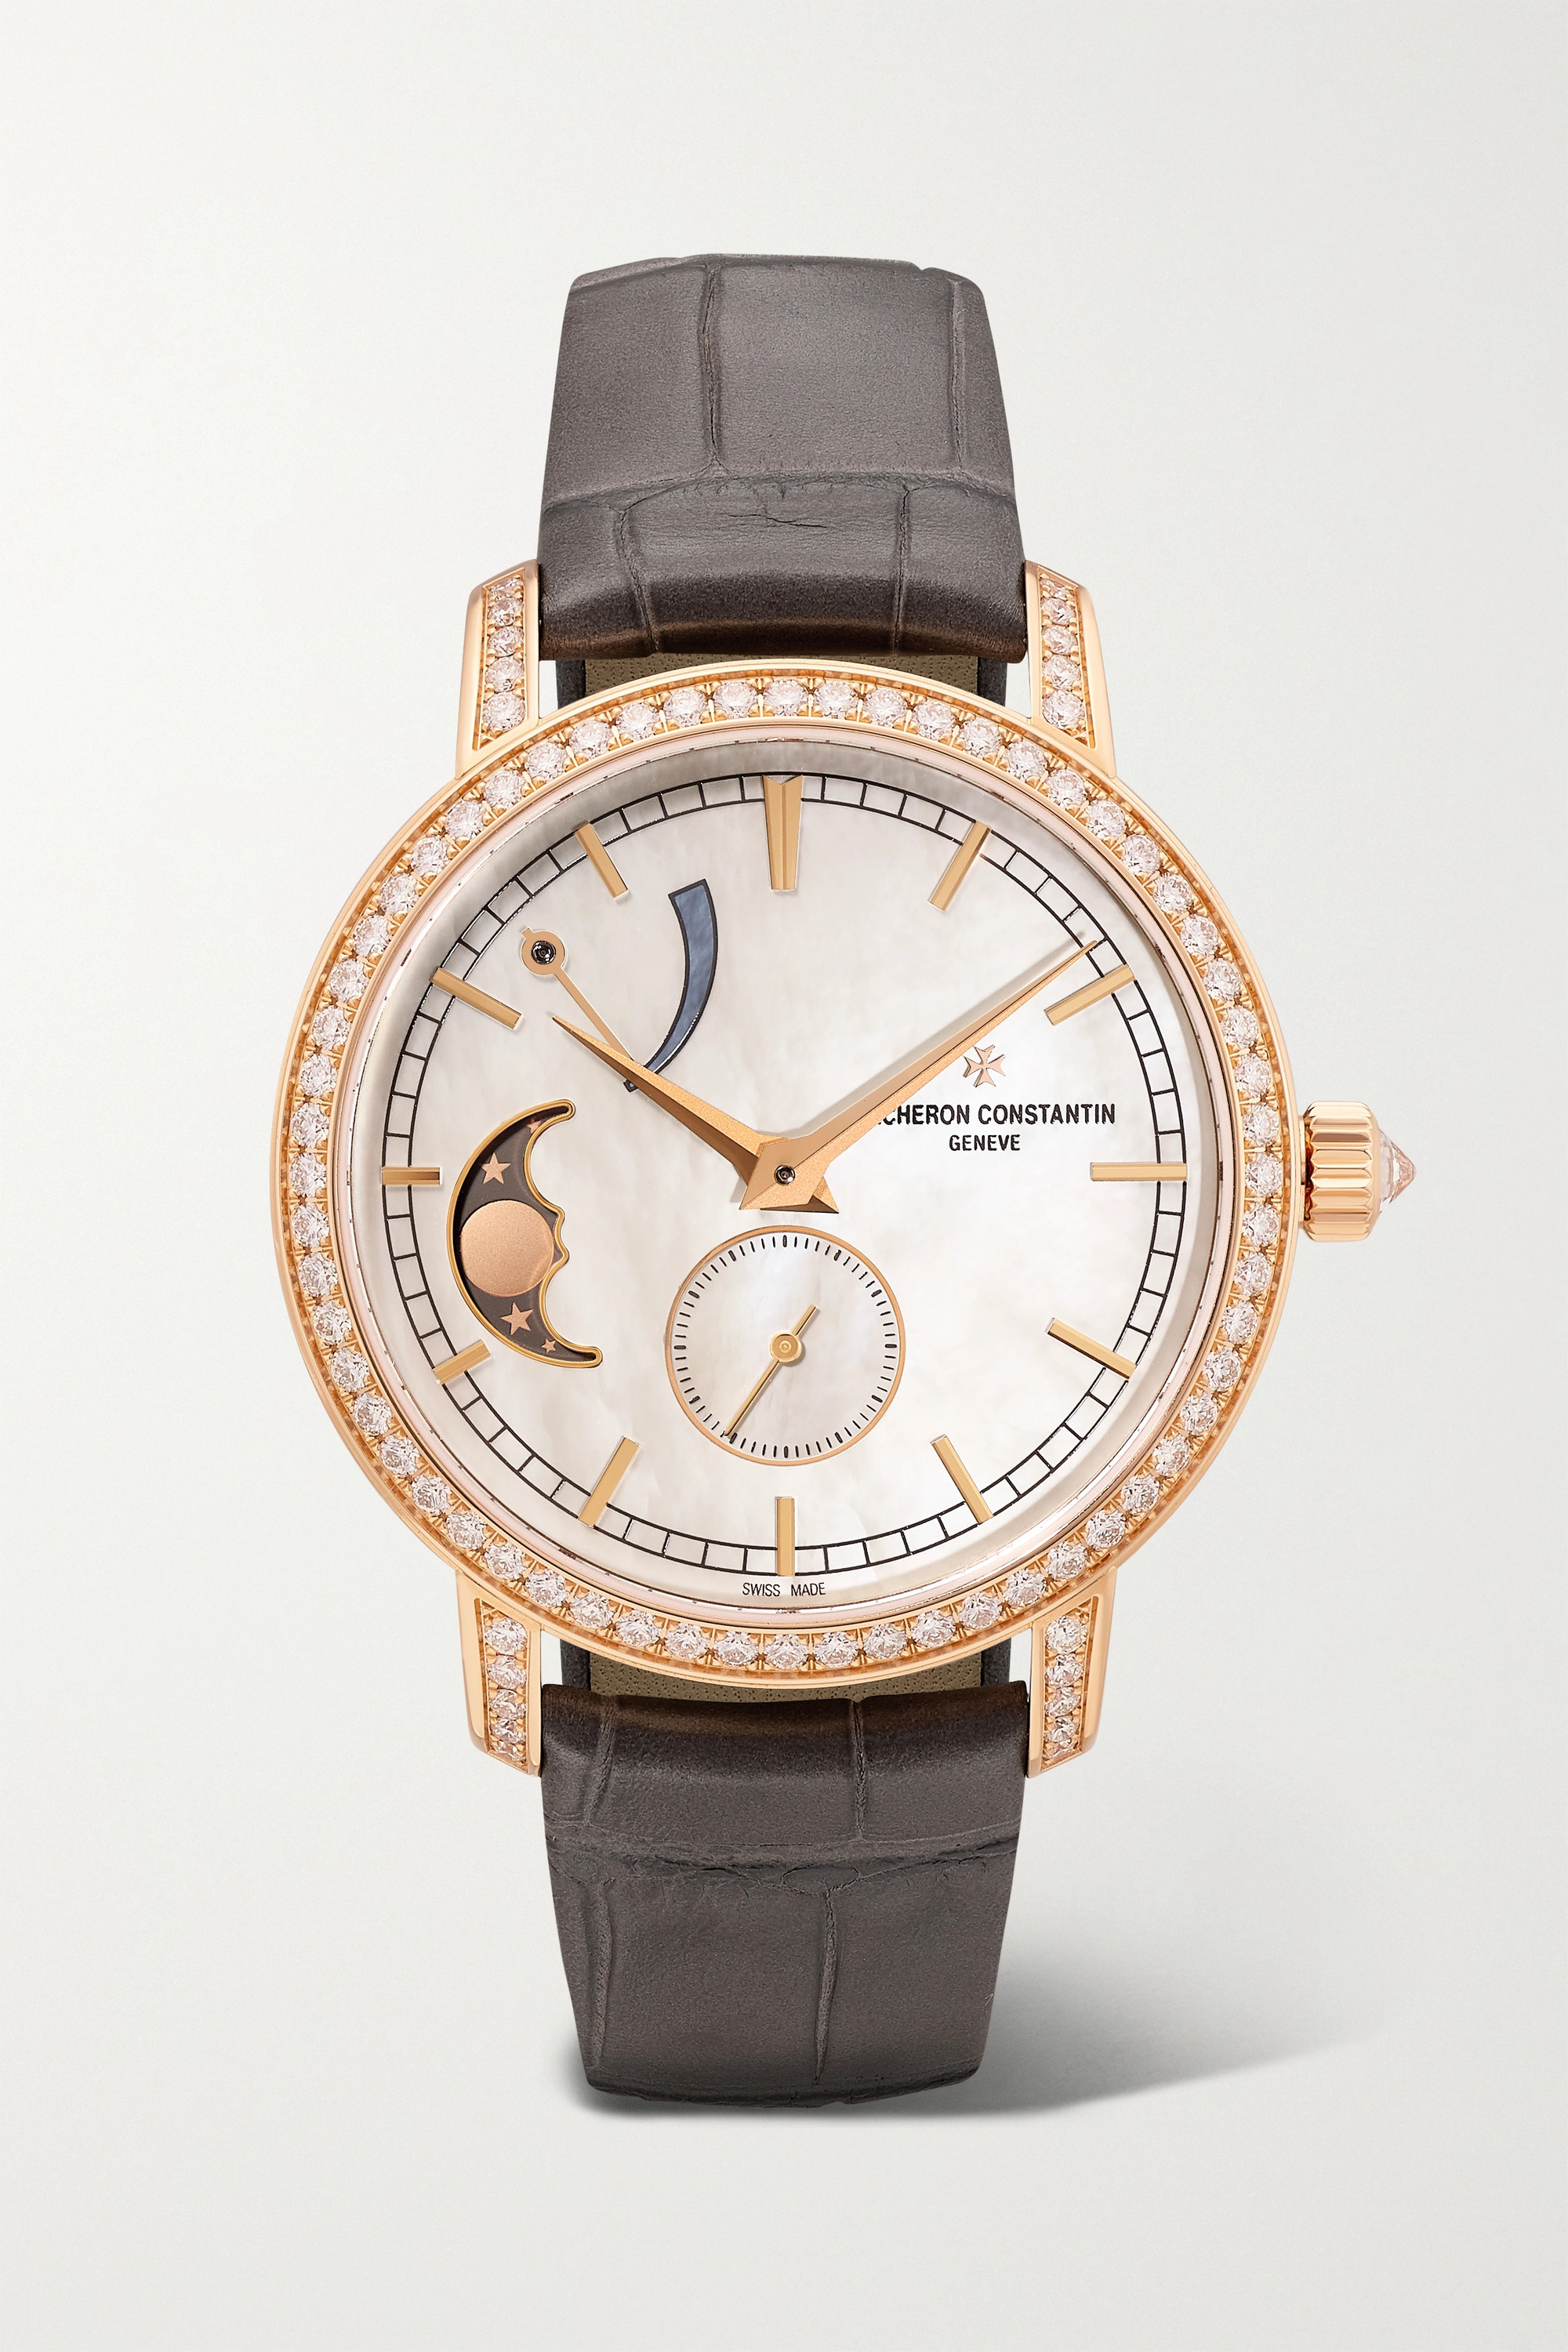 Vacheron Constantin Traditionnelle 36mm 18-karat pink gold, alligator, diamond and mother-of-pearl watch